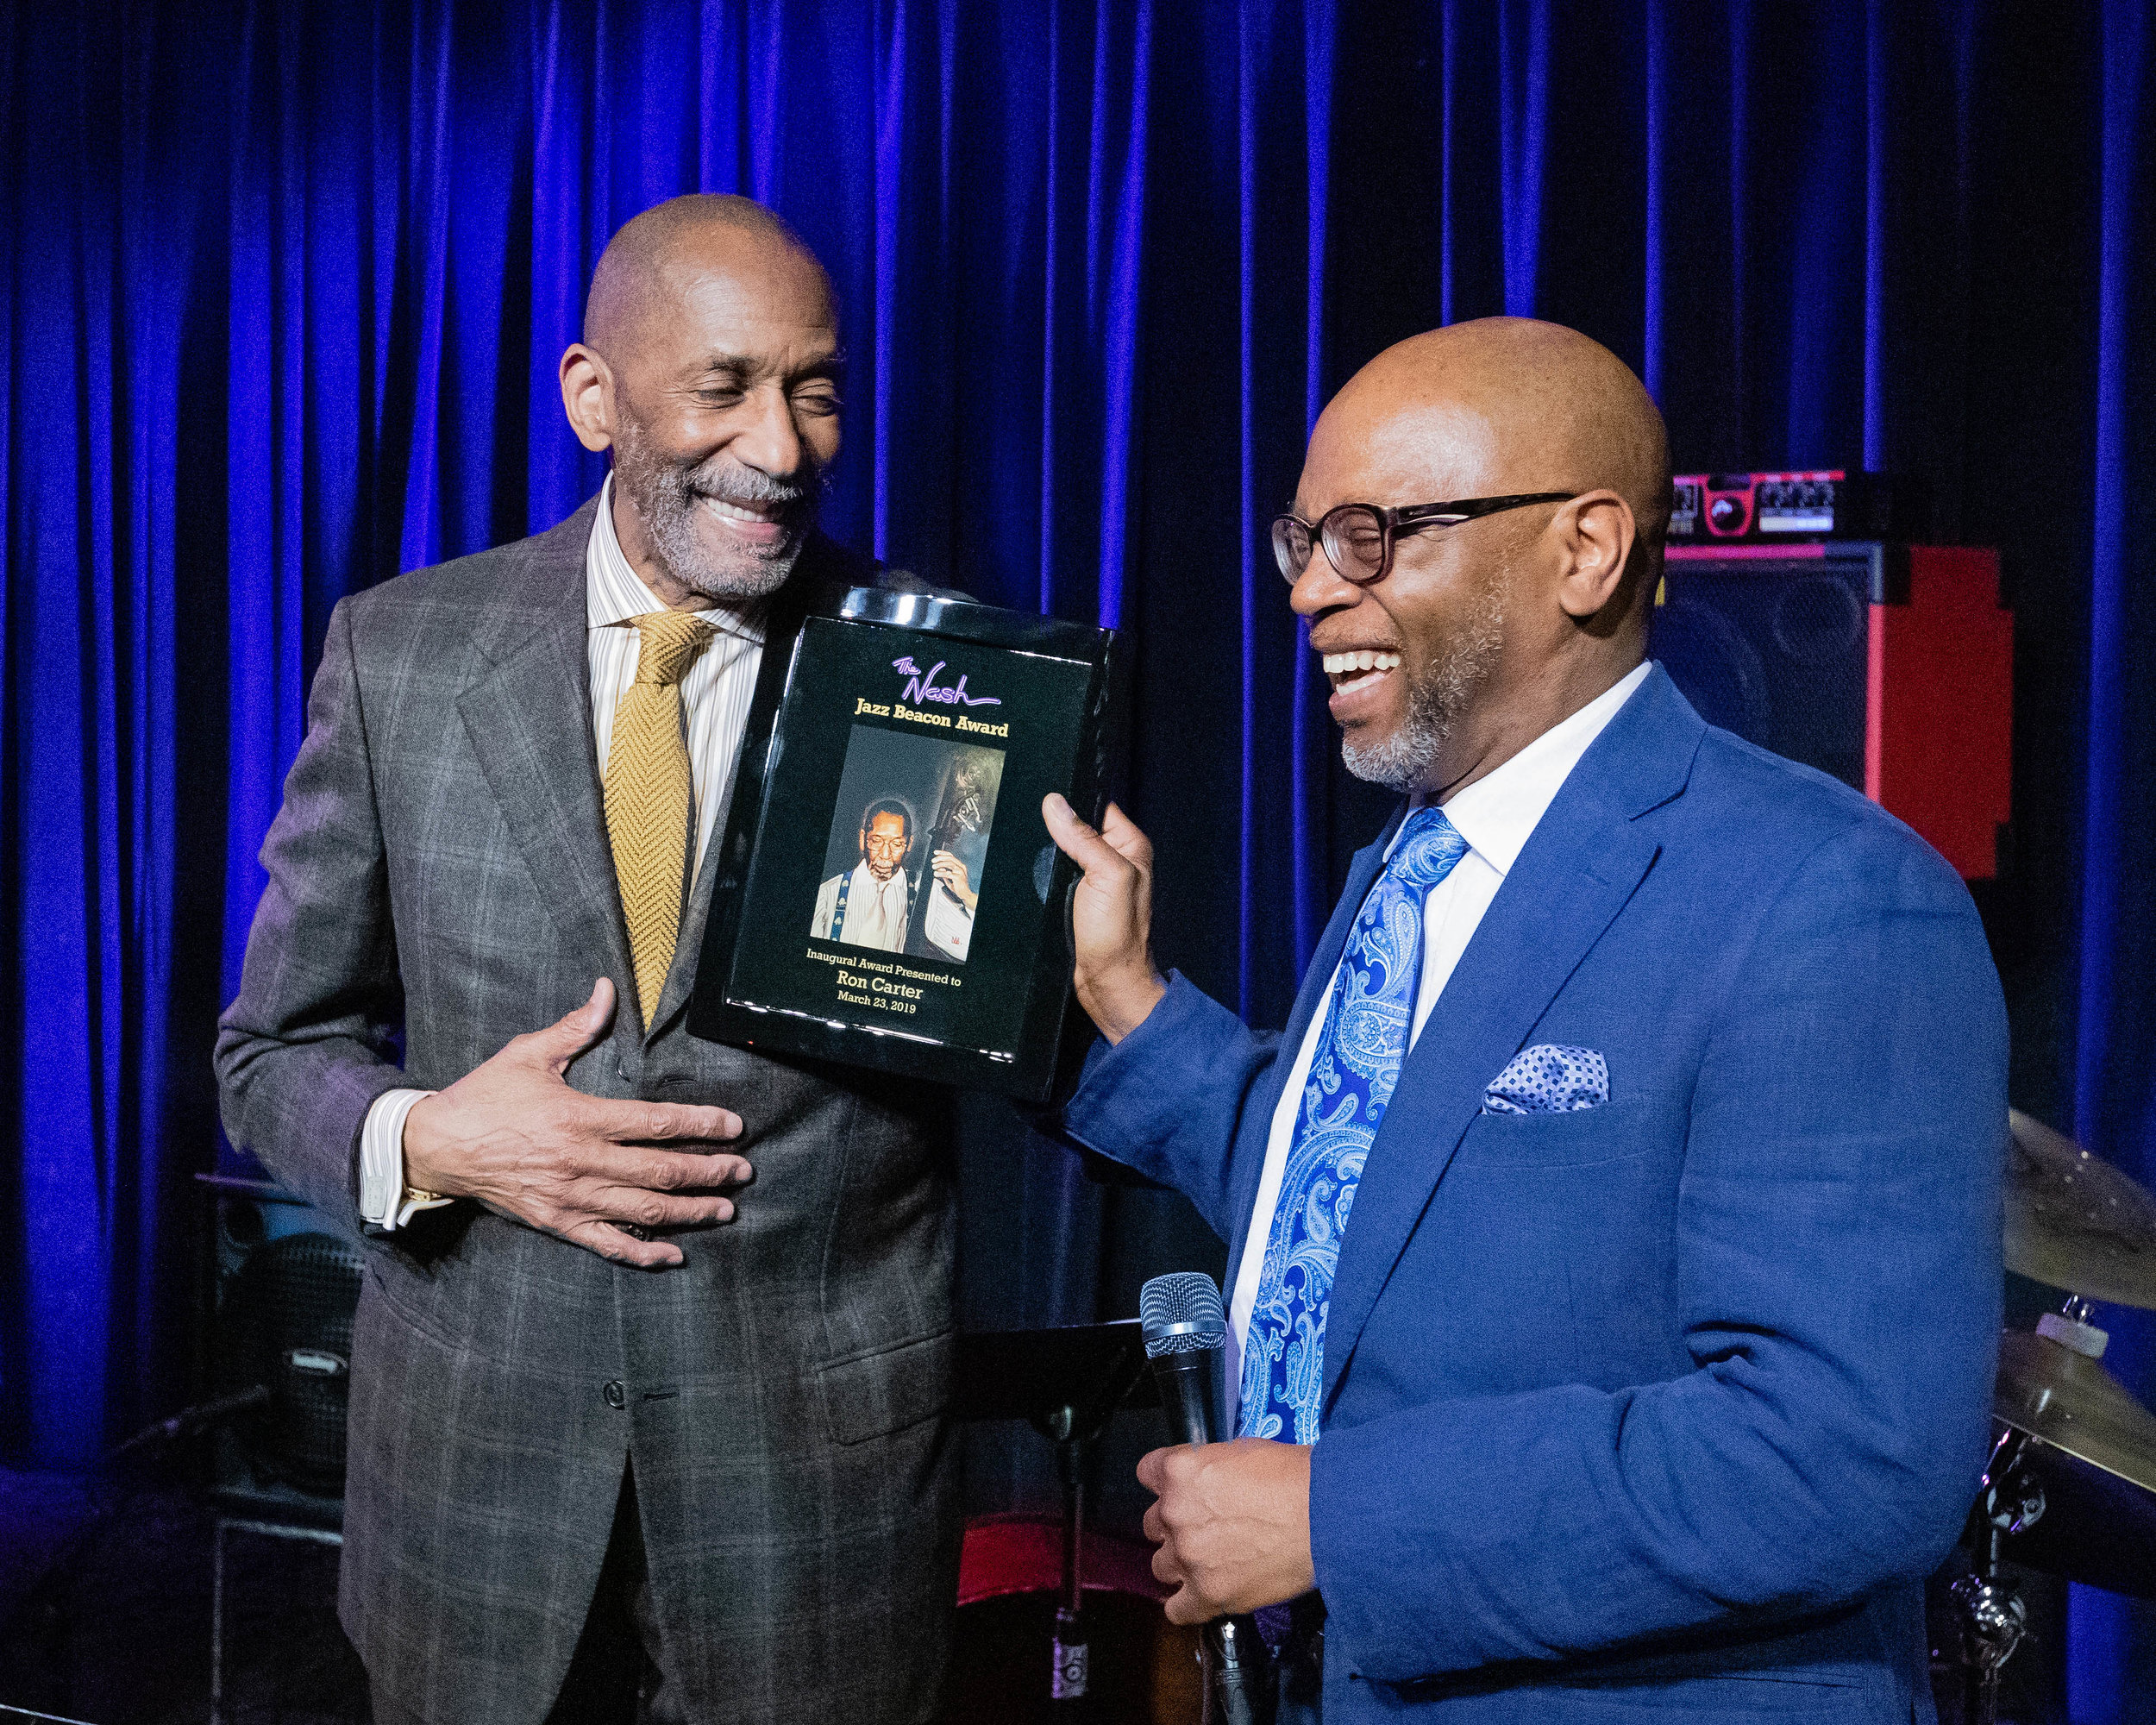 Bassist Ron Carter accepts The Nash Jazz Beacon Award from Lewis Nash.